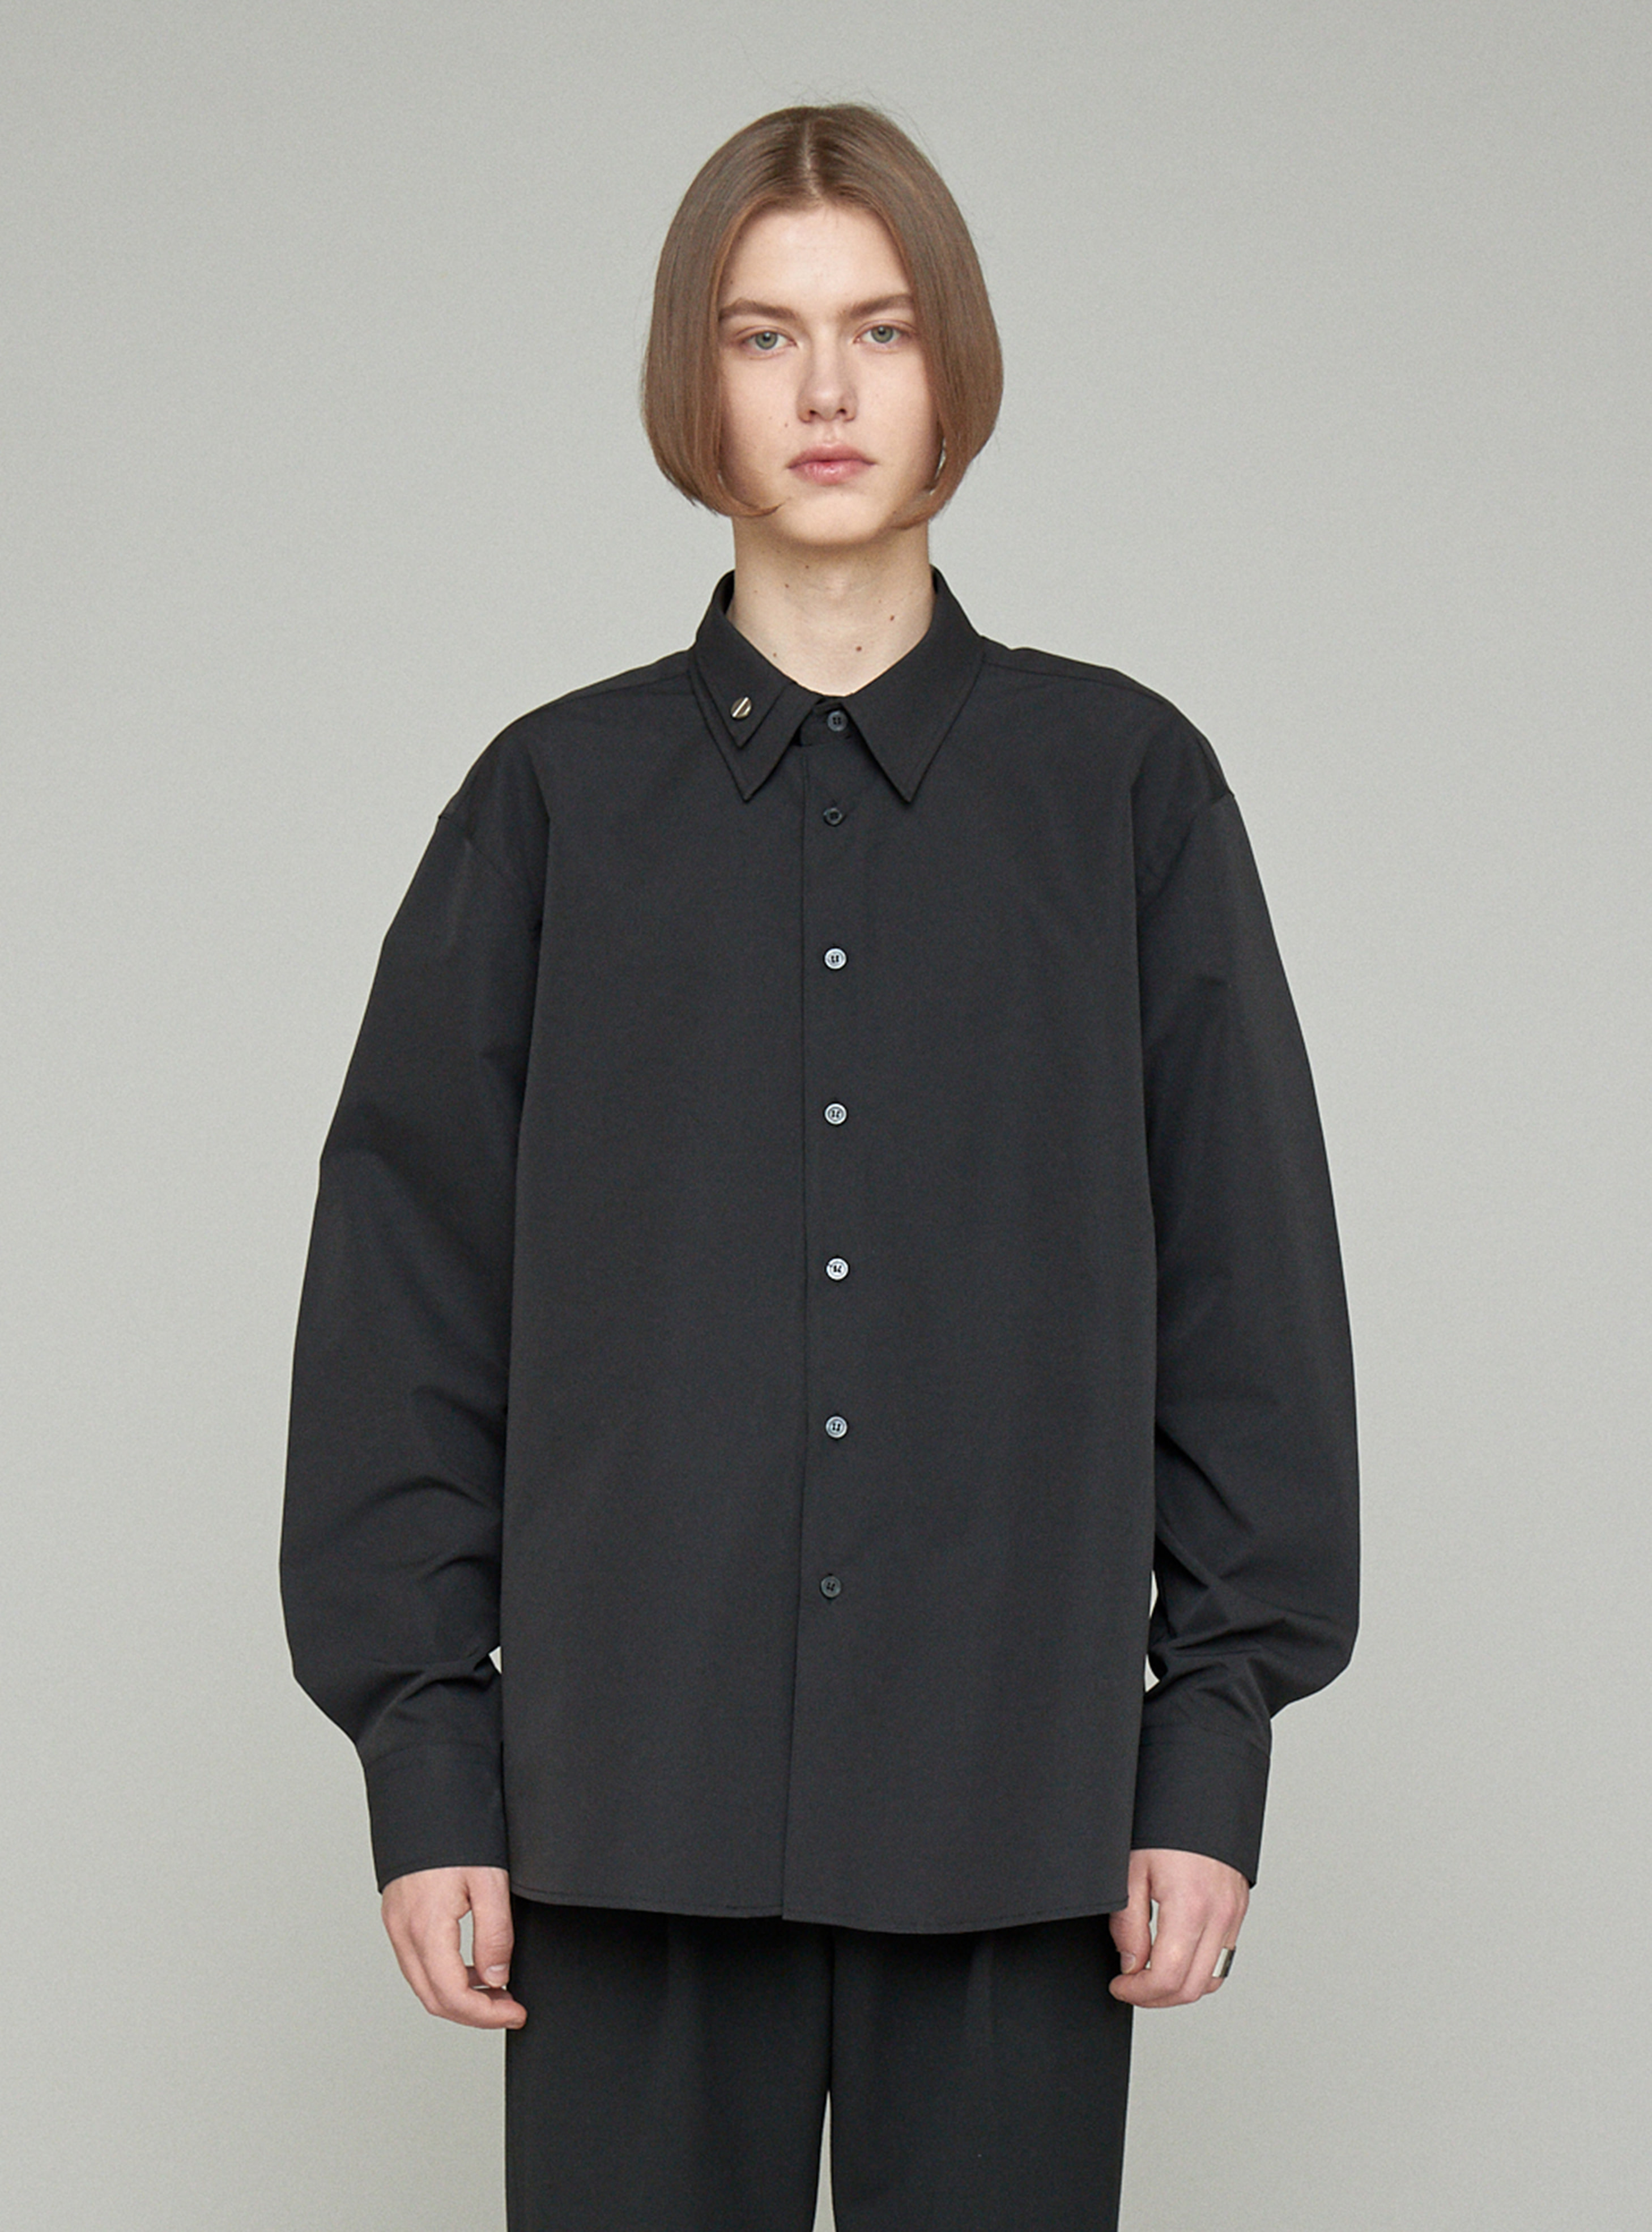 BOLT DOUBLE COLLAR SHIRT BLACK